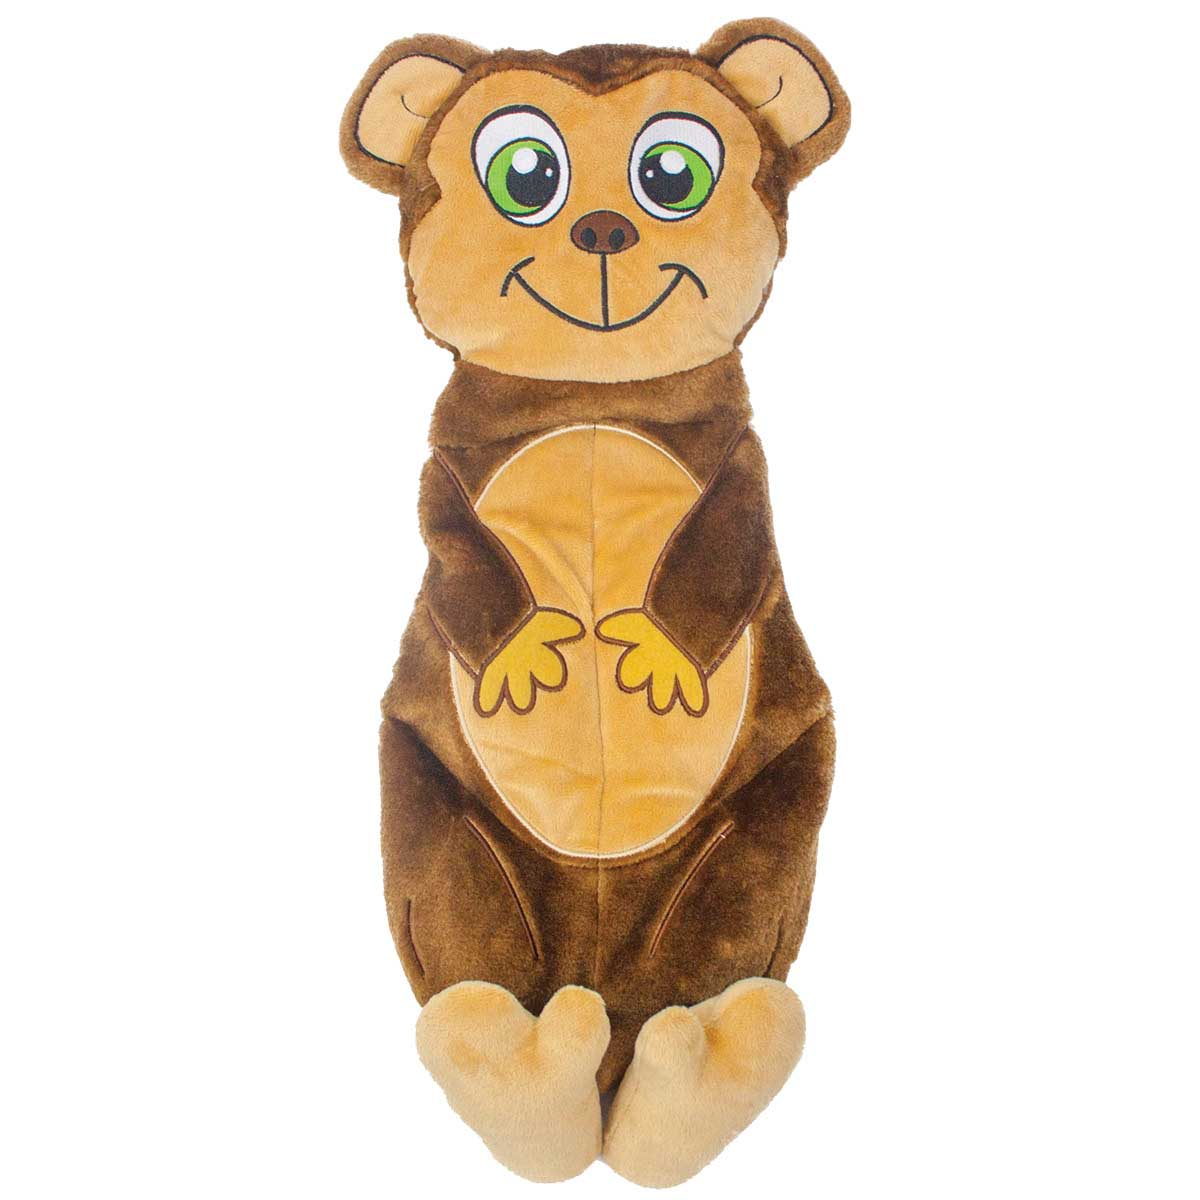 Outward Hound Squeakimals Monkey Large 22.5 inch Dog Toy